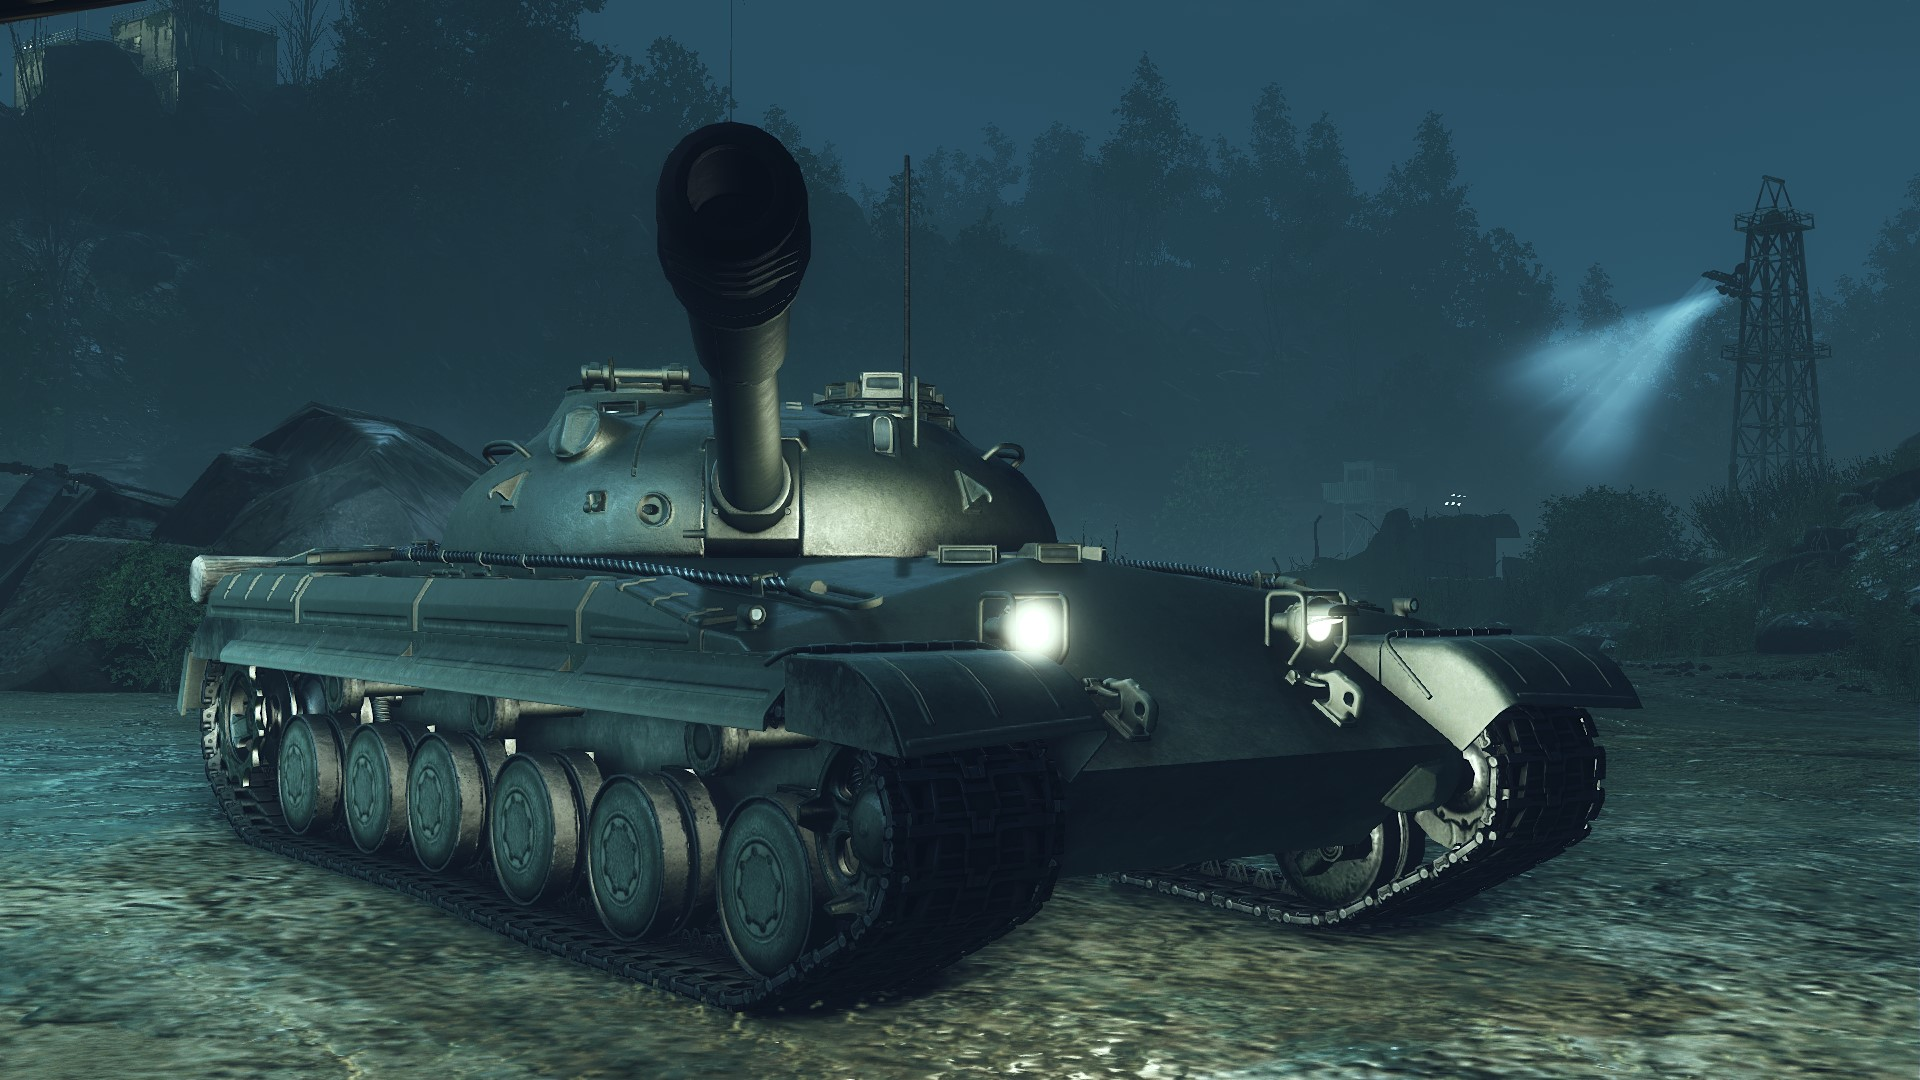 buy armored warfare: project armata - tank object 430 and download